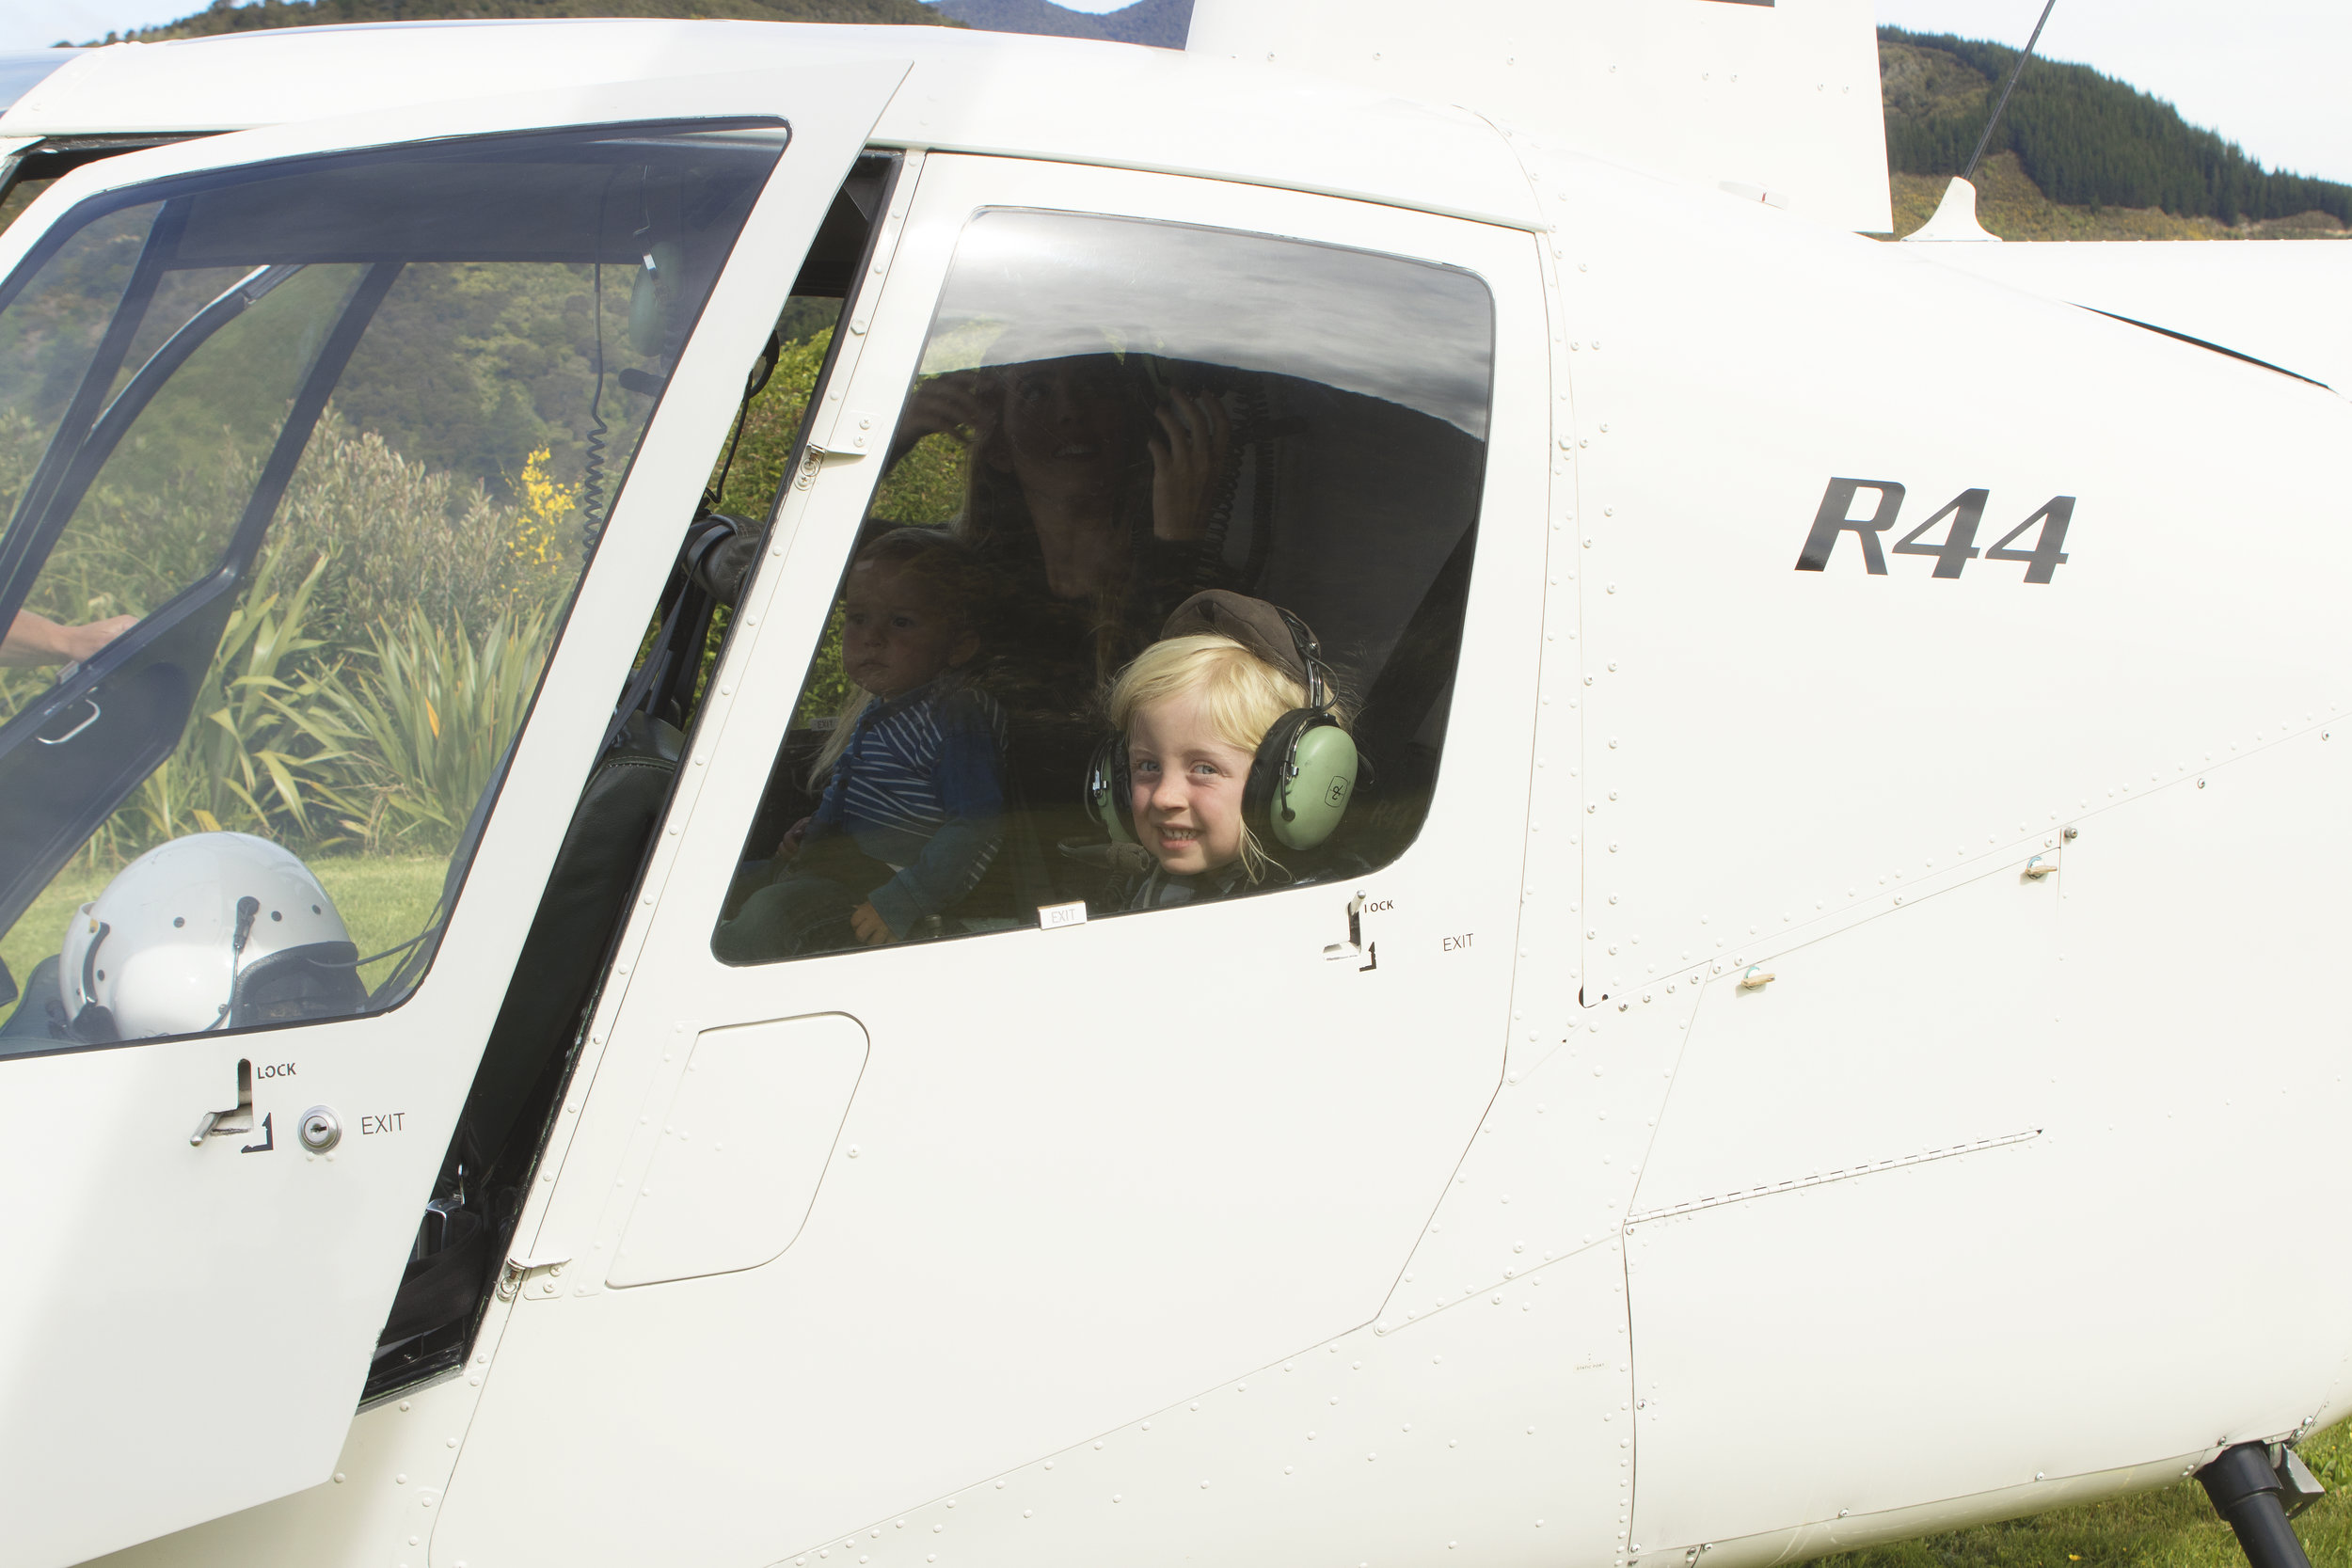 belandbeau_family adventure new zealand helicopter ride with kids_3.jpg